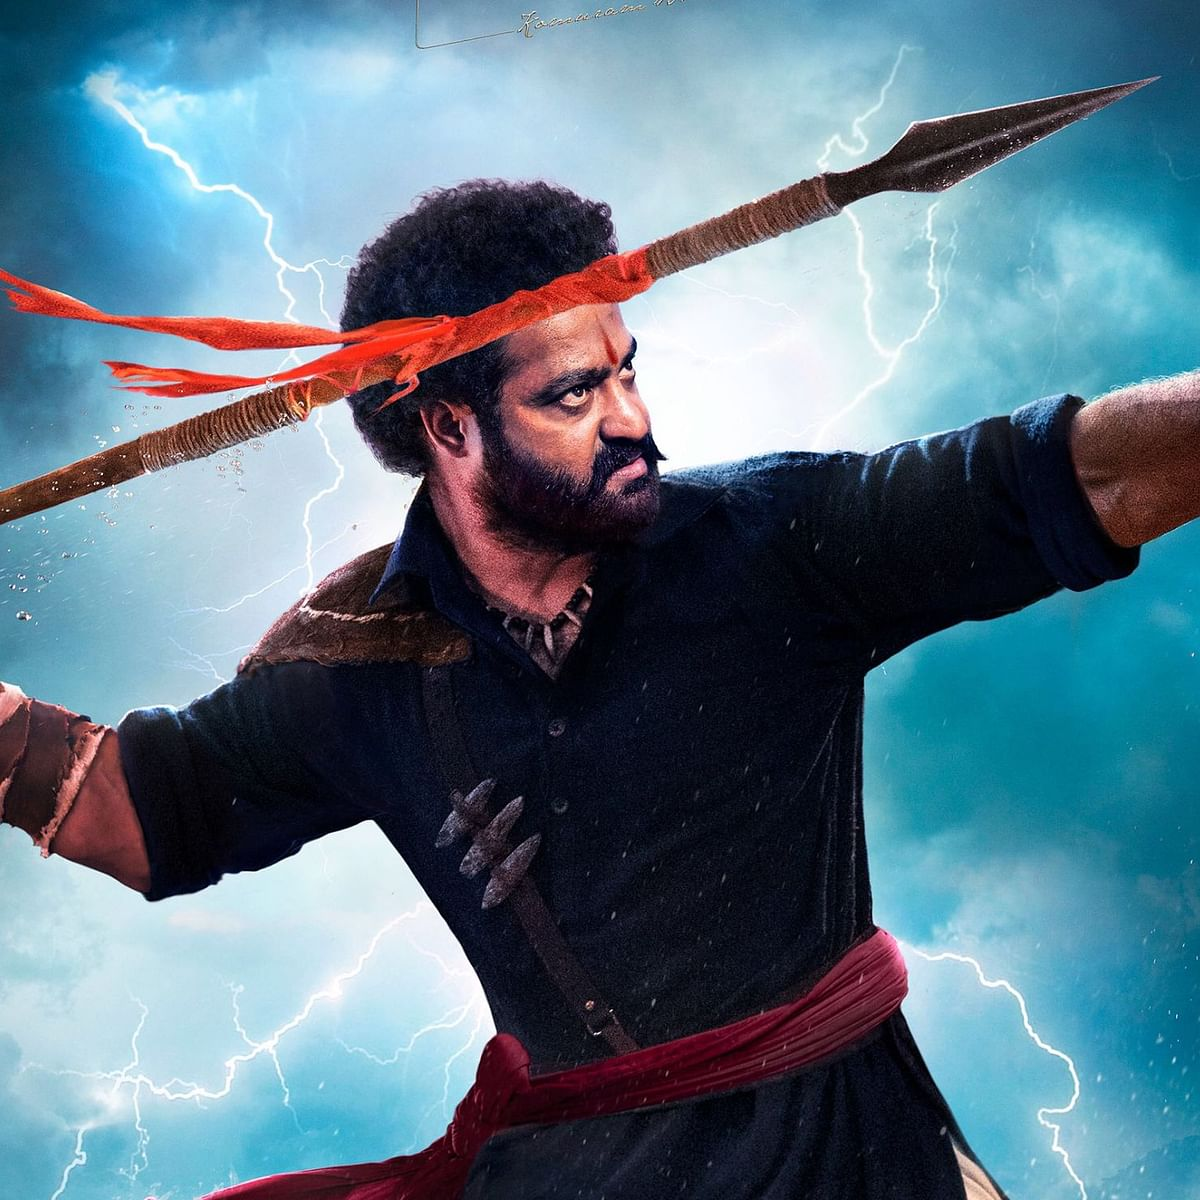 On Jr NTR's birthday, 'RRR' makers unveil new look of the actor as Komaram Bheem, see pic